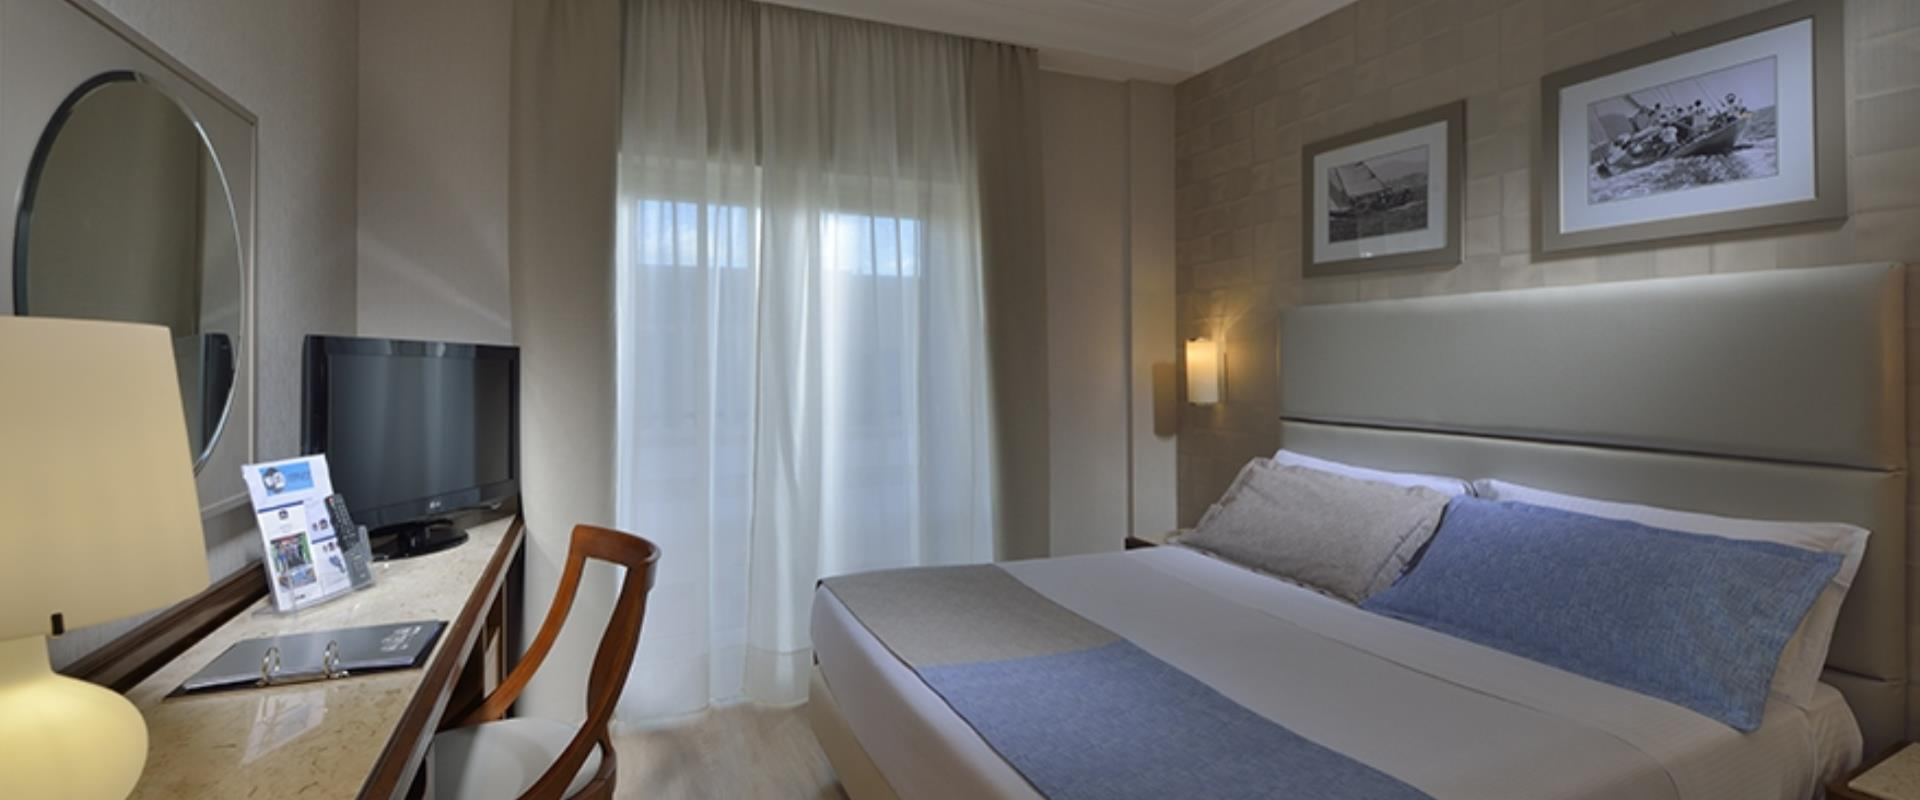 The Comfort rooms of the BW Signature Collection Hotel Paradiso in Naples are wide and comfortable rooms recently renovated